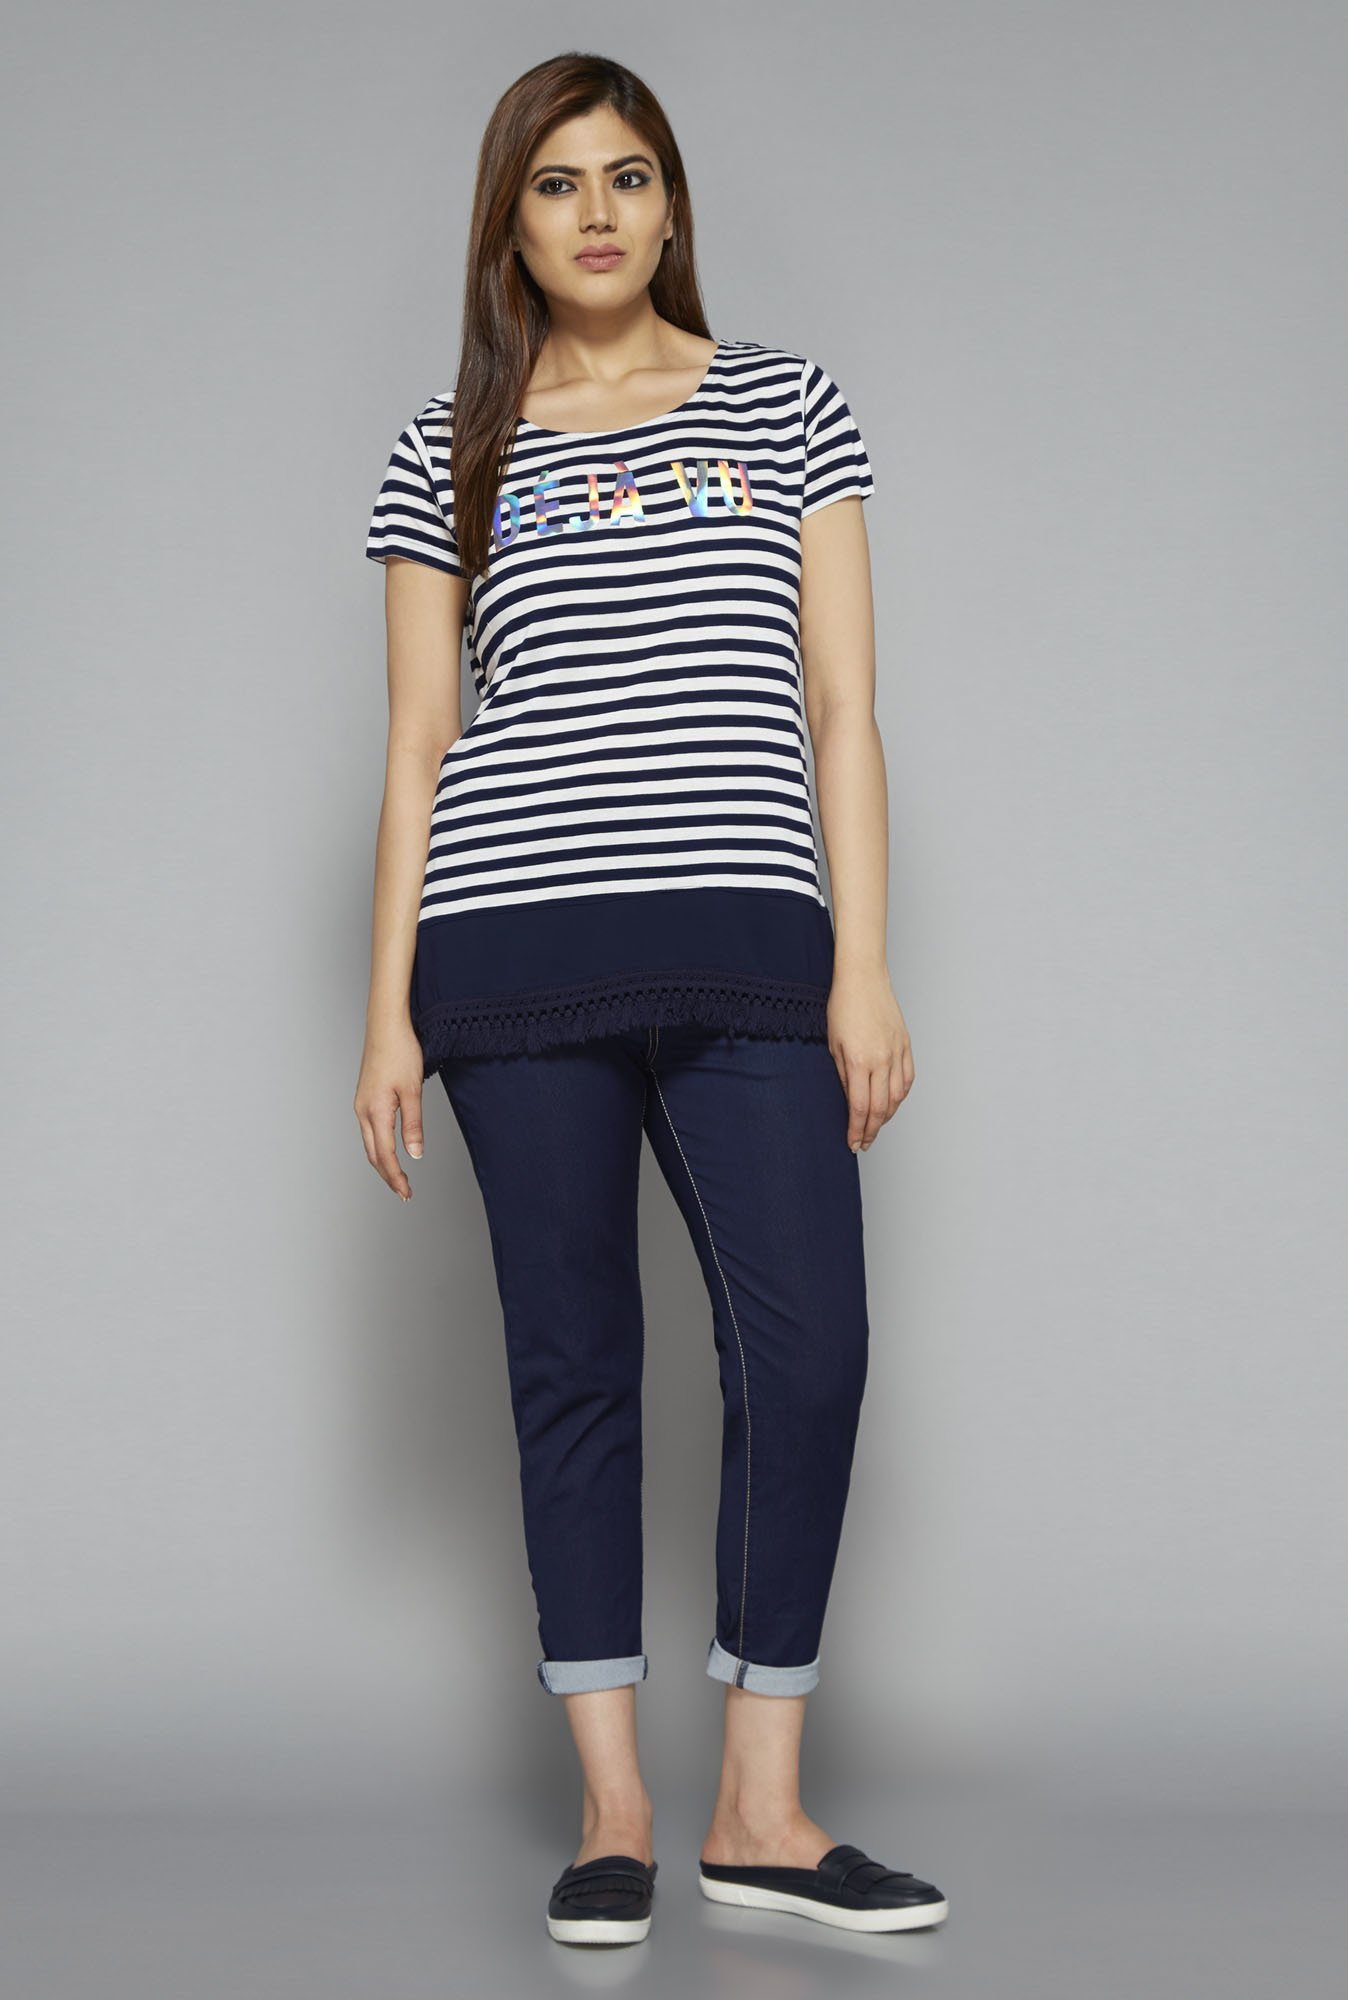 Sassy Soda by Westside Navy Striped T Shirt